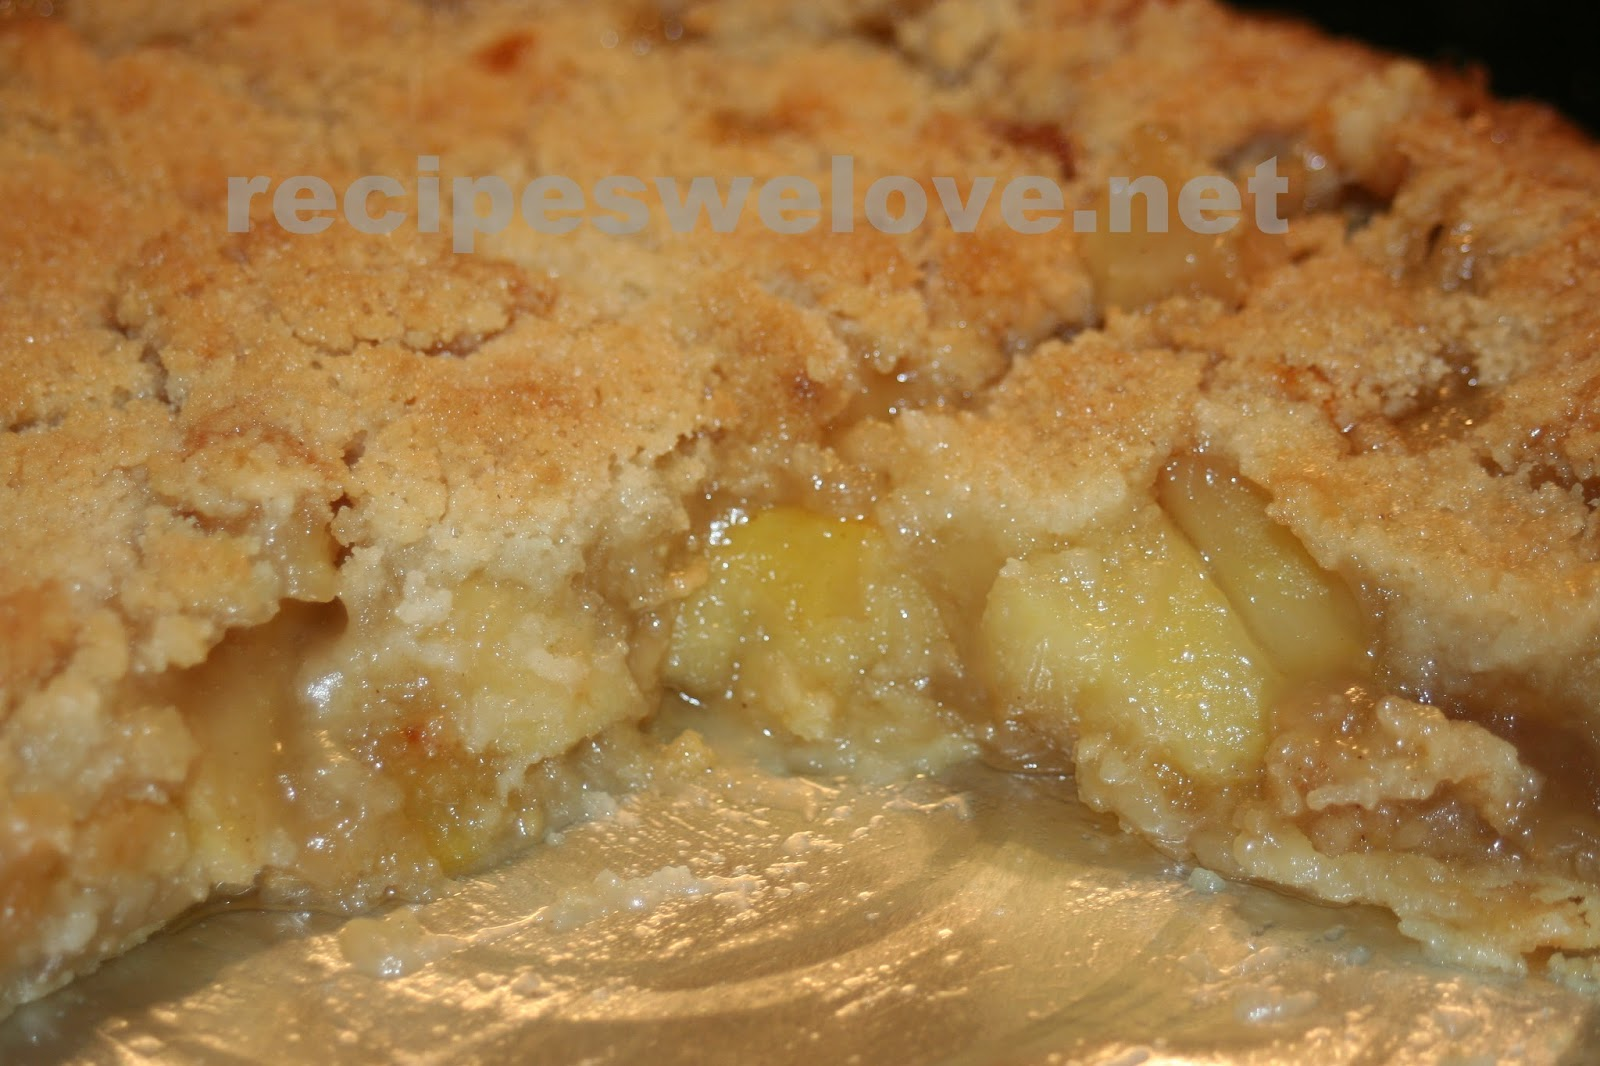 Recipes We Love: Apple Pie (with streusel topping)